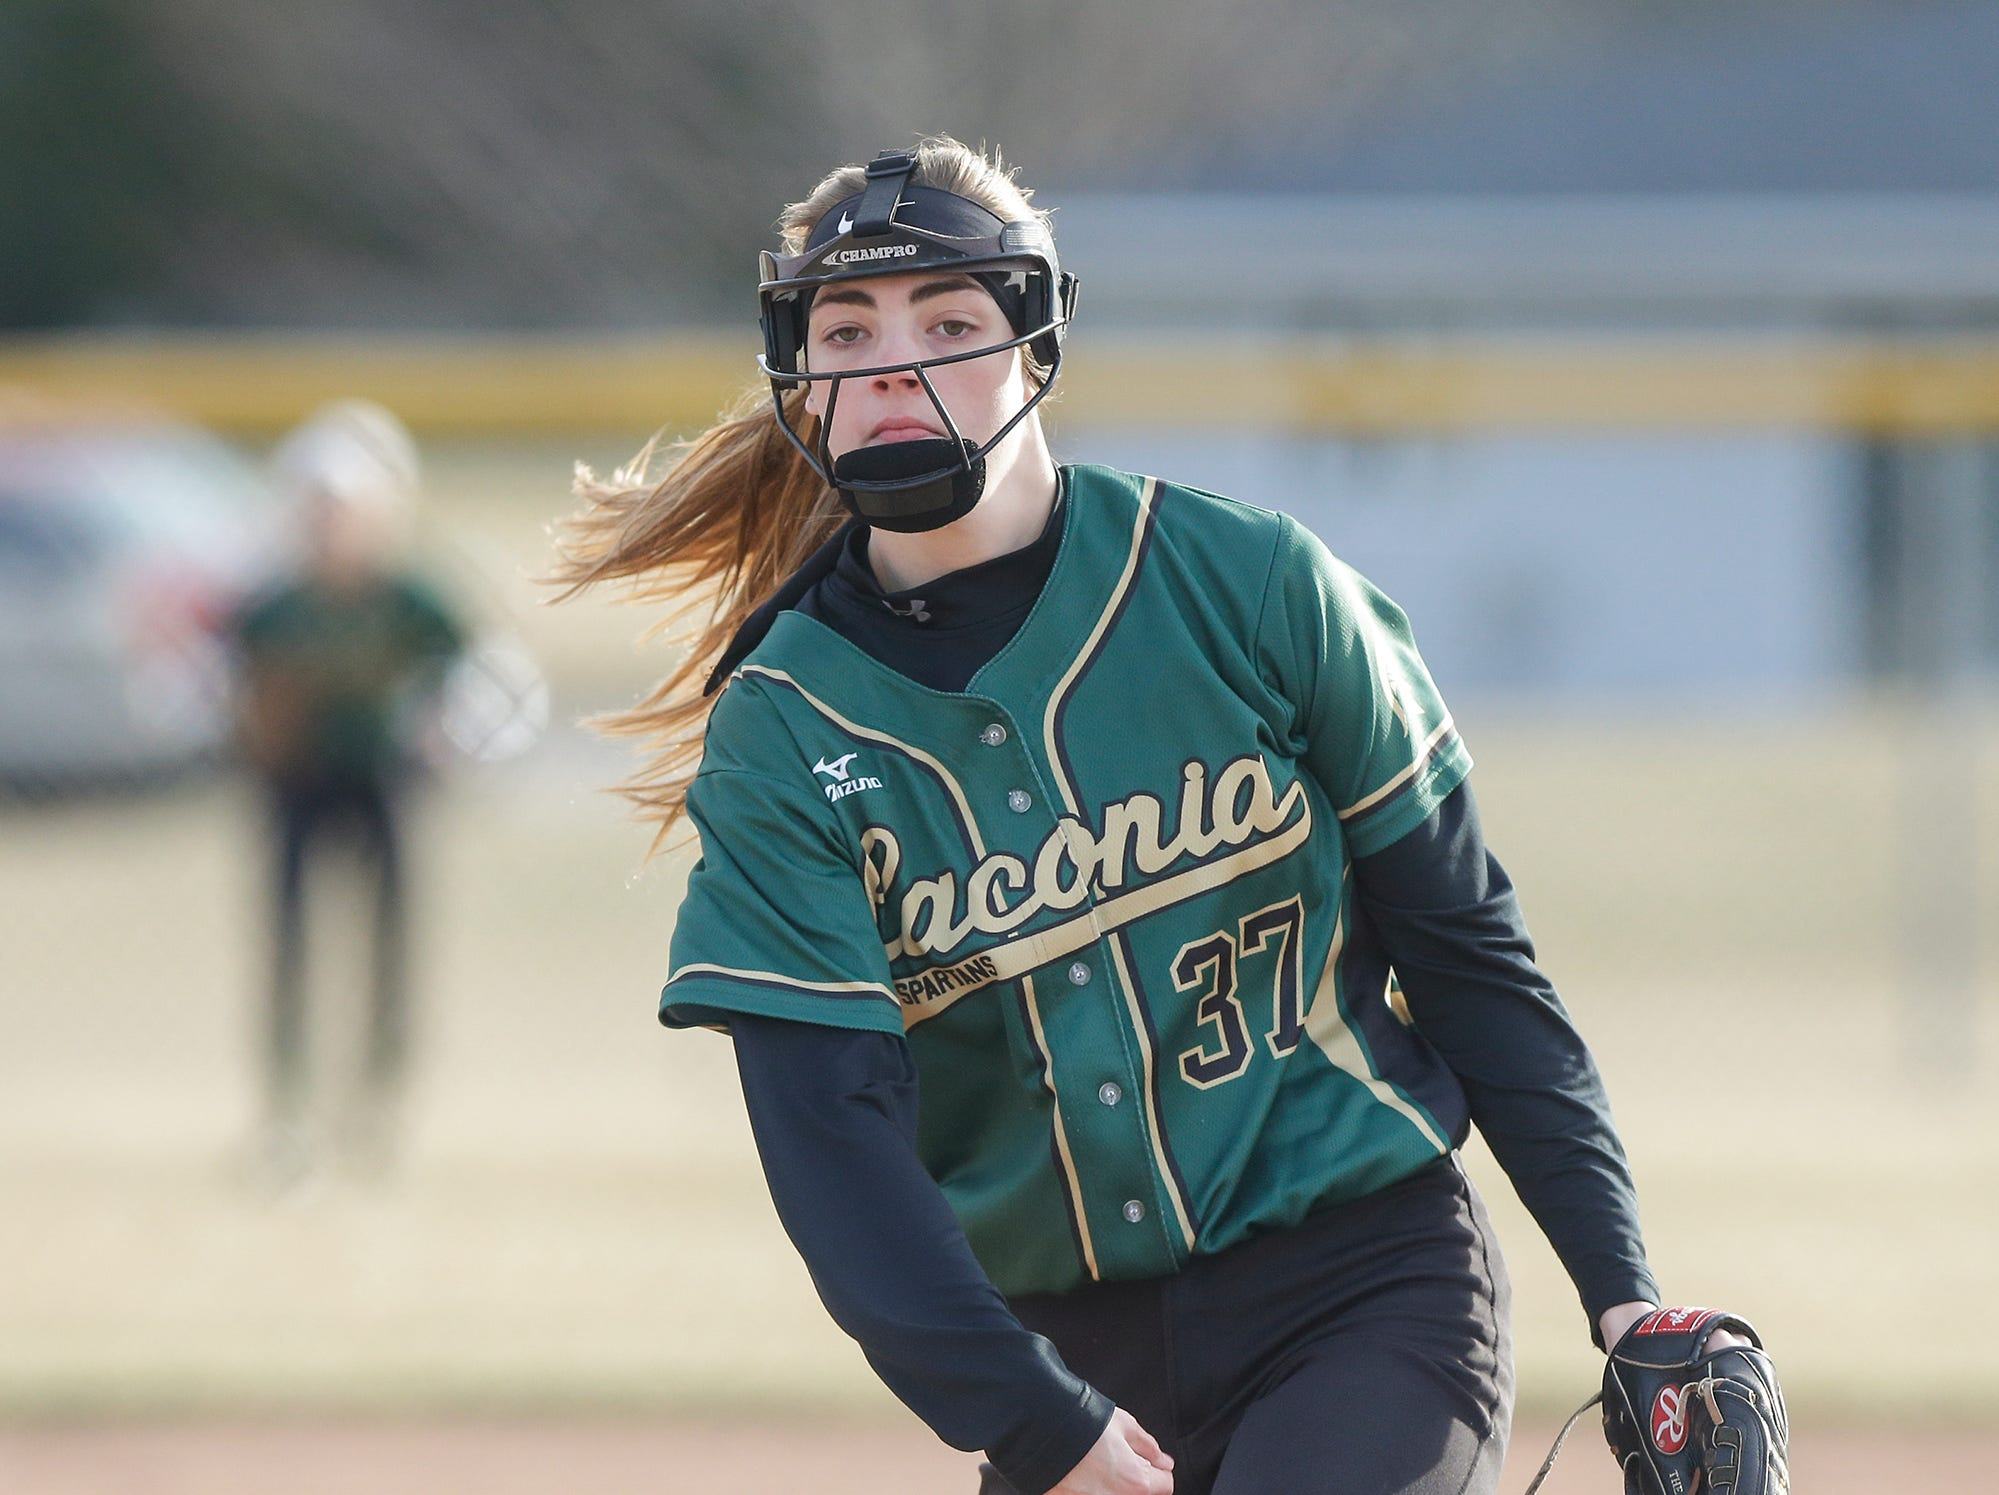 Laconia High School softball's Maci Grade pitches against Winnebago Lutheran Academy April 9, 2019 during their game in Fond du Lac, Wis. Laconia won the game 25-9. Doug Raflik/USA TODAY NETWORK-Wisconsin